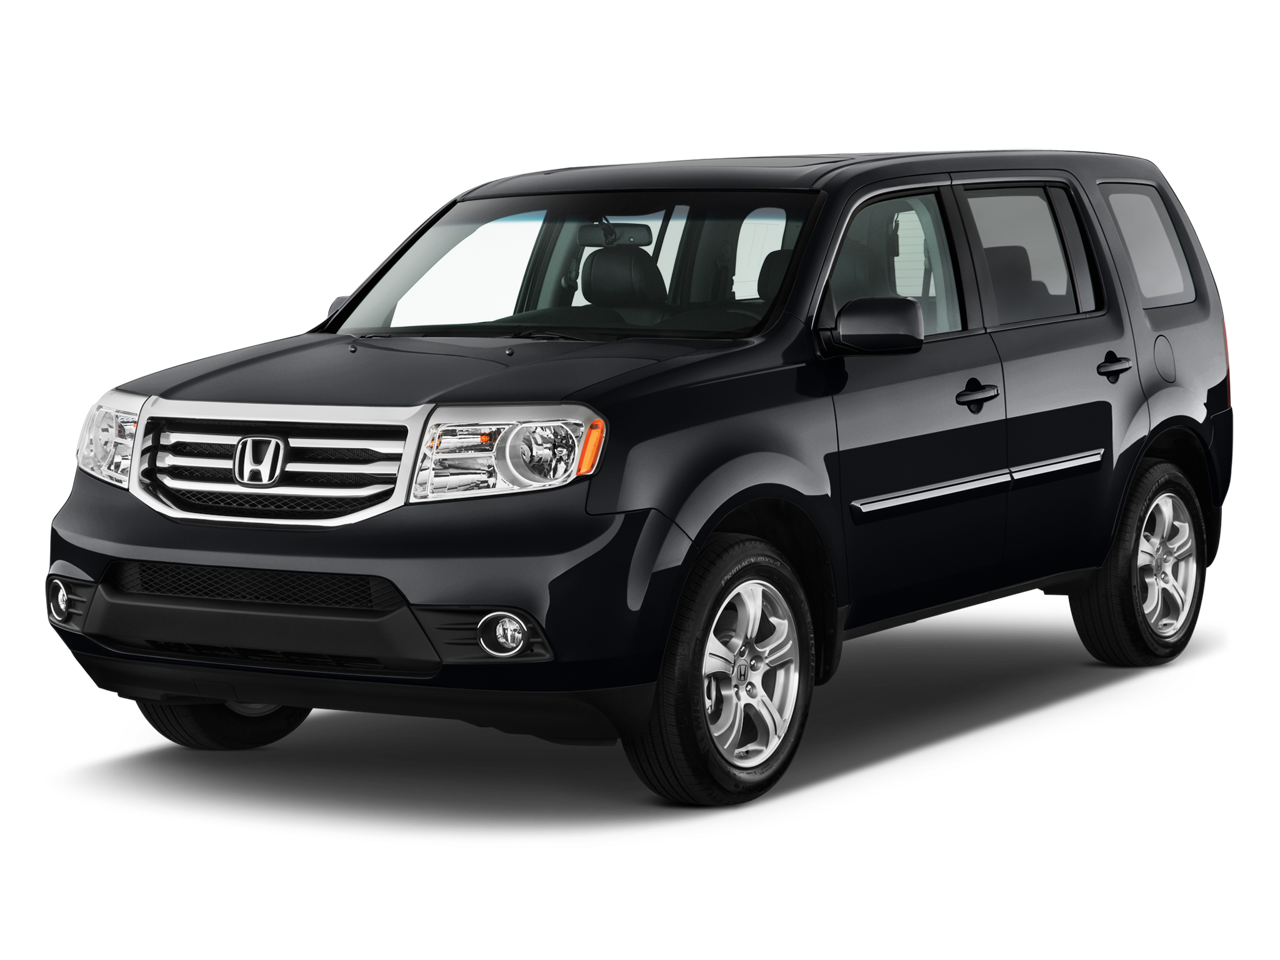 used one owner 2015 honda pilot ex l near westminster ca honda world orange county. Black Bedroom Furniture Sets. Home Design Ideas